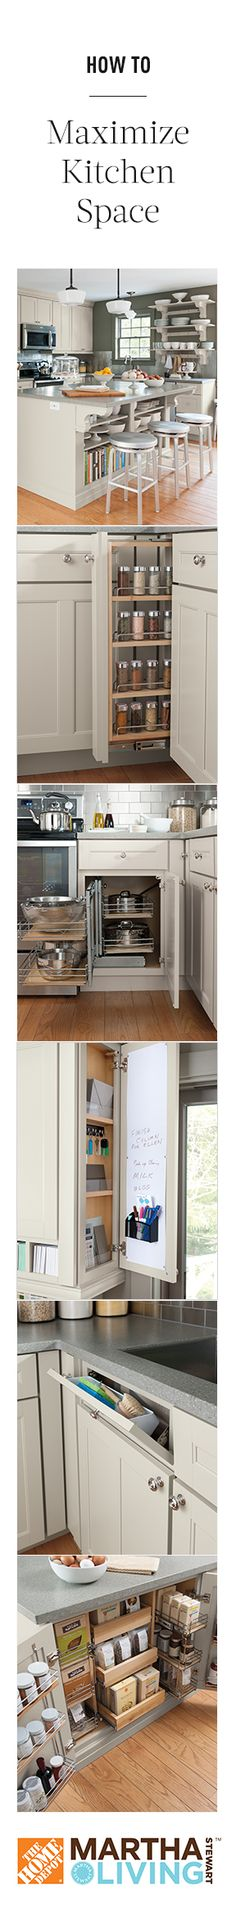 How to maximize kitchen space